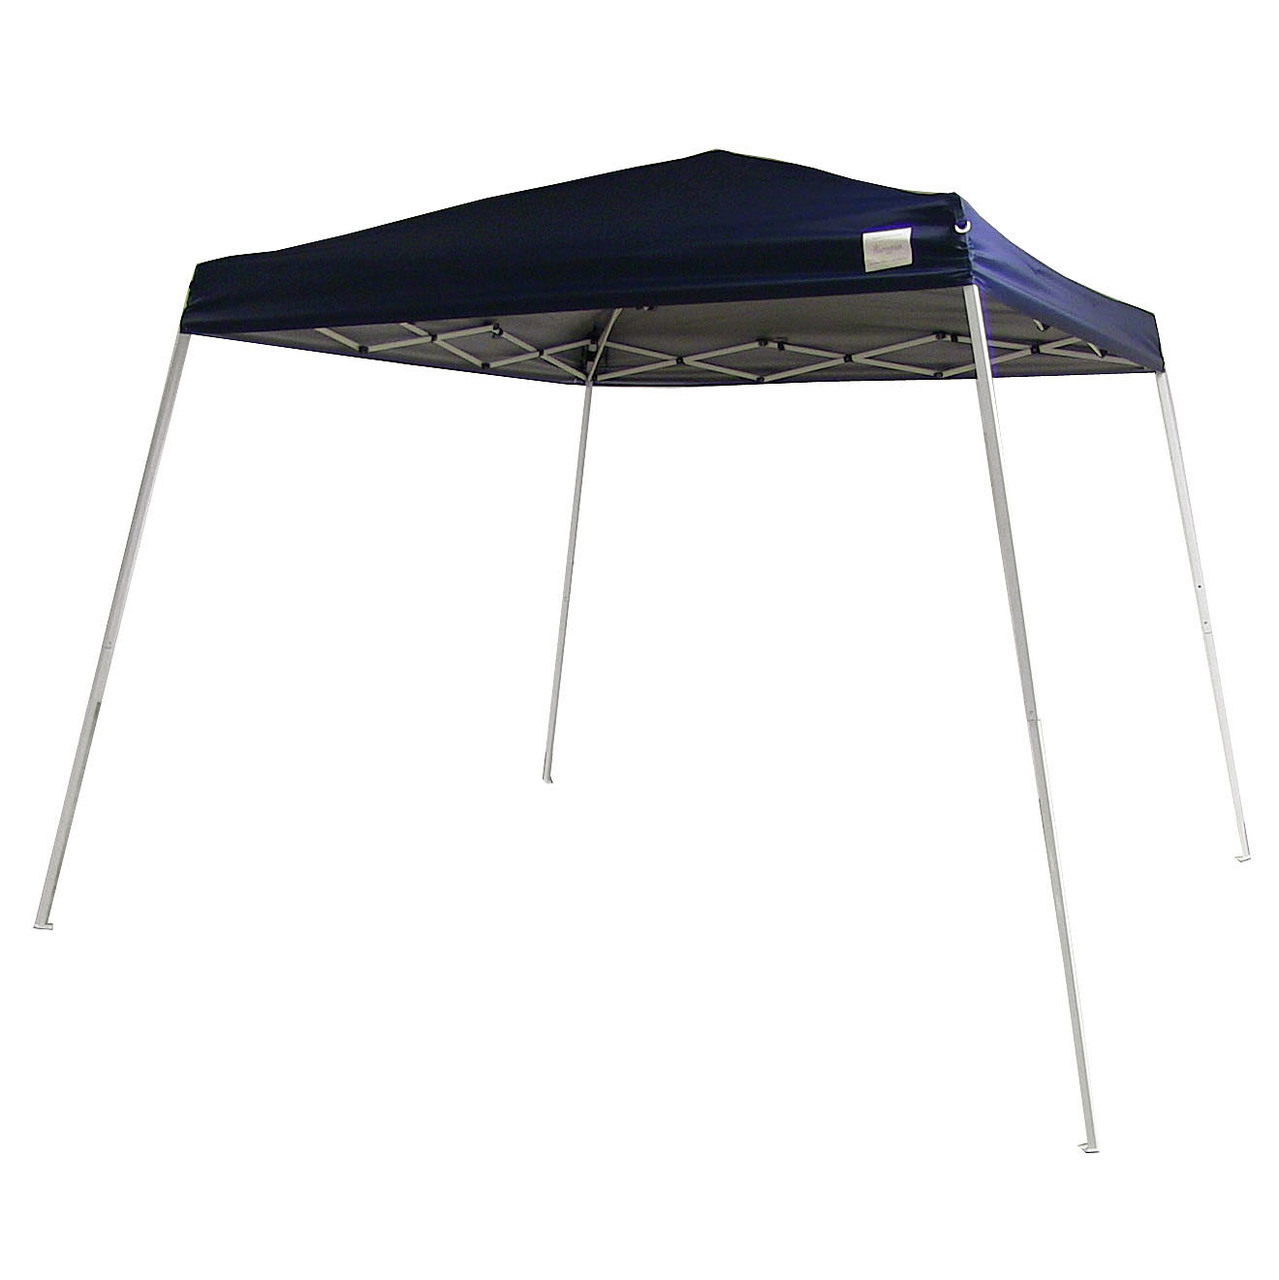 Sunnydaze Quick-Up Canopy 8 Foot x 8 Foot Top 10 Foot x 10 Foot Ground Slant Leg with Carrying Bag, Navy Blue